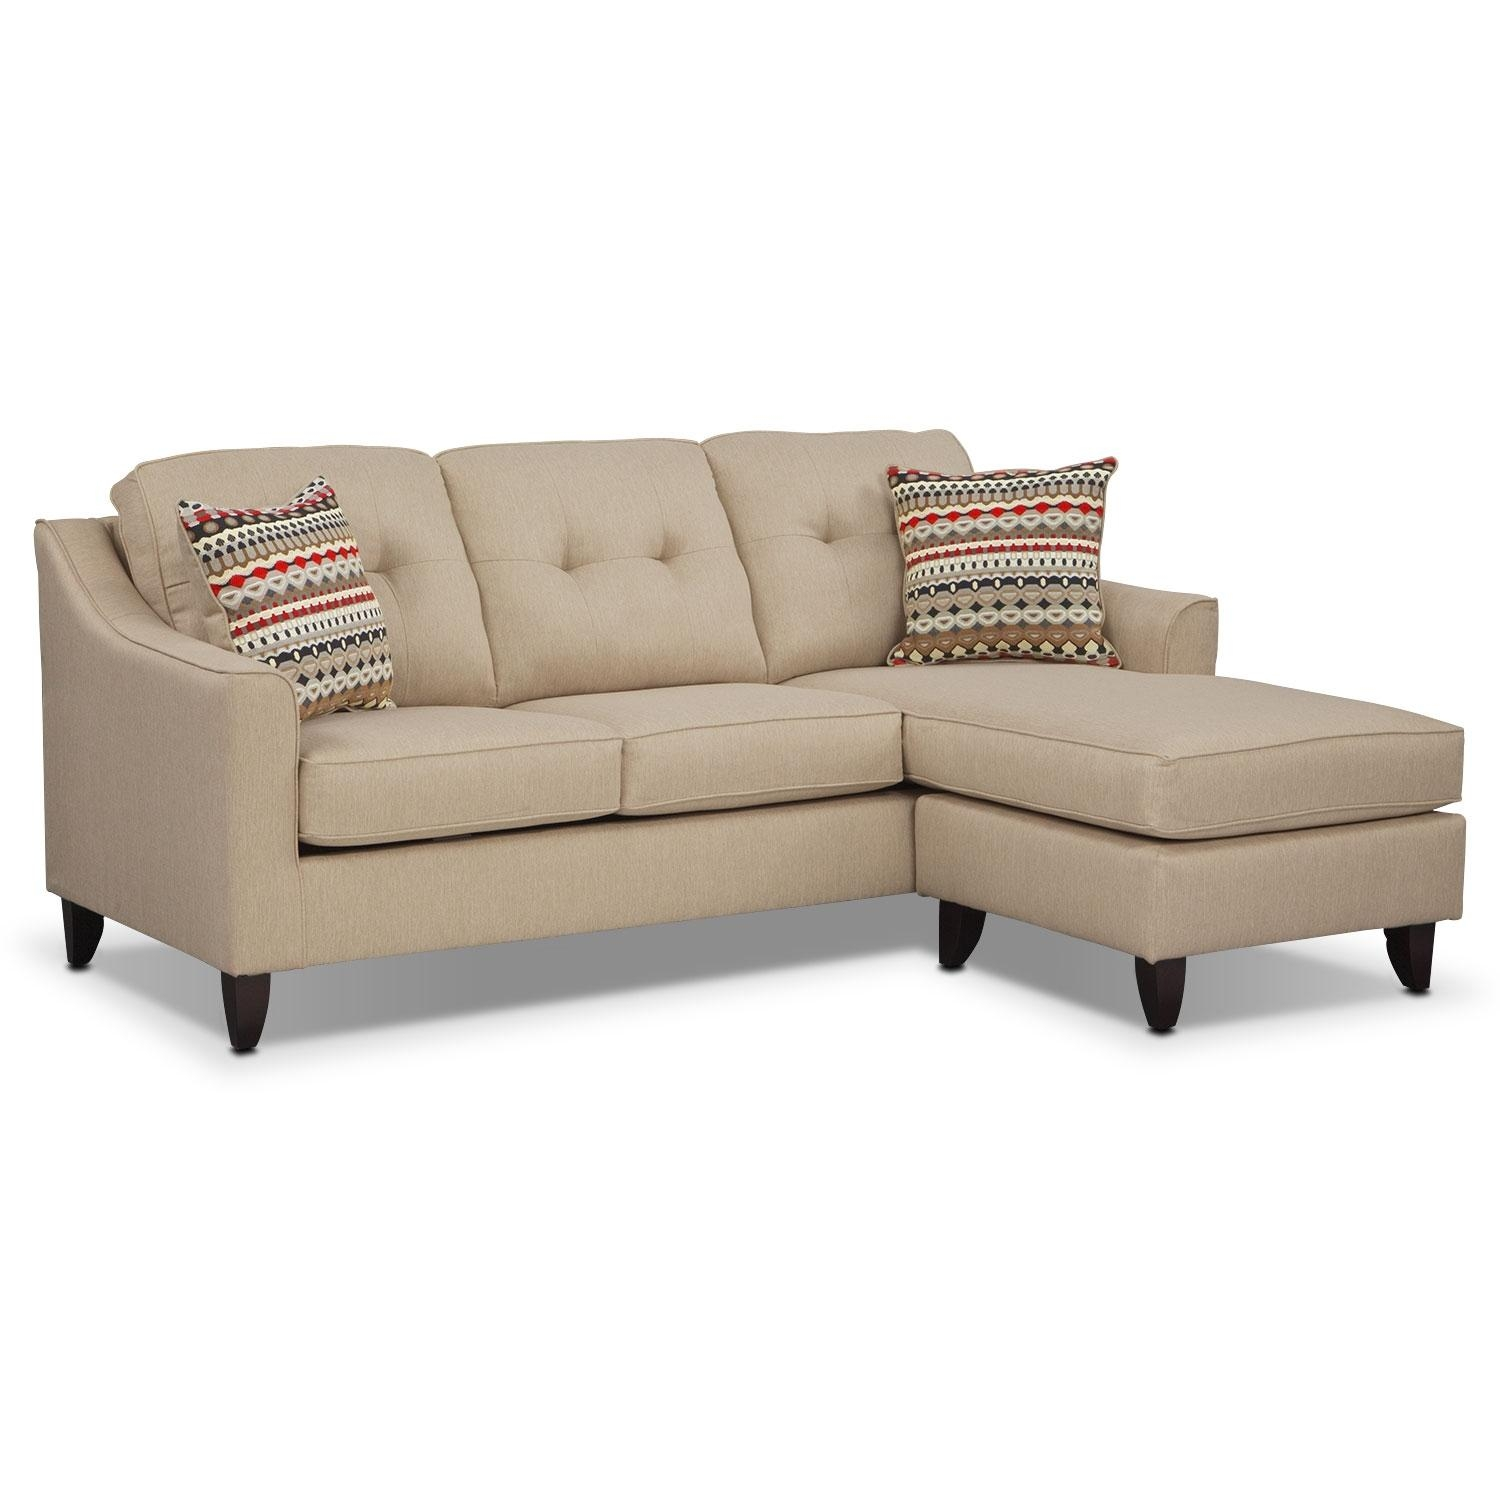 Download Bold And Modern Sofas In Richmond Va Intended For Richmond Sofas (View 16 of 20)